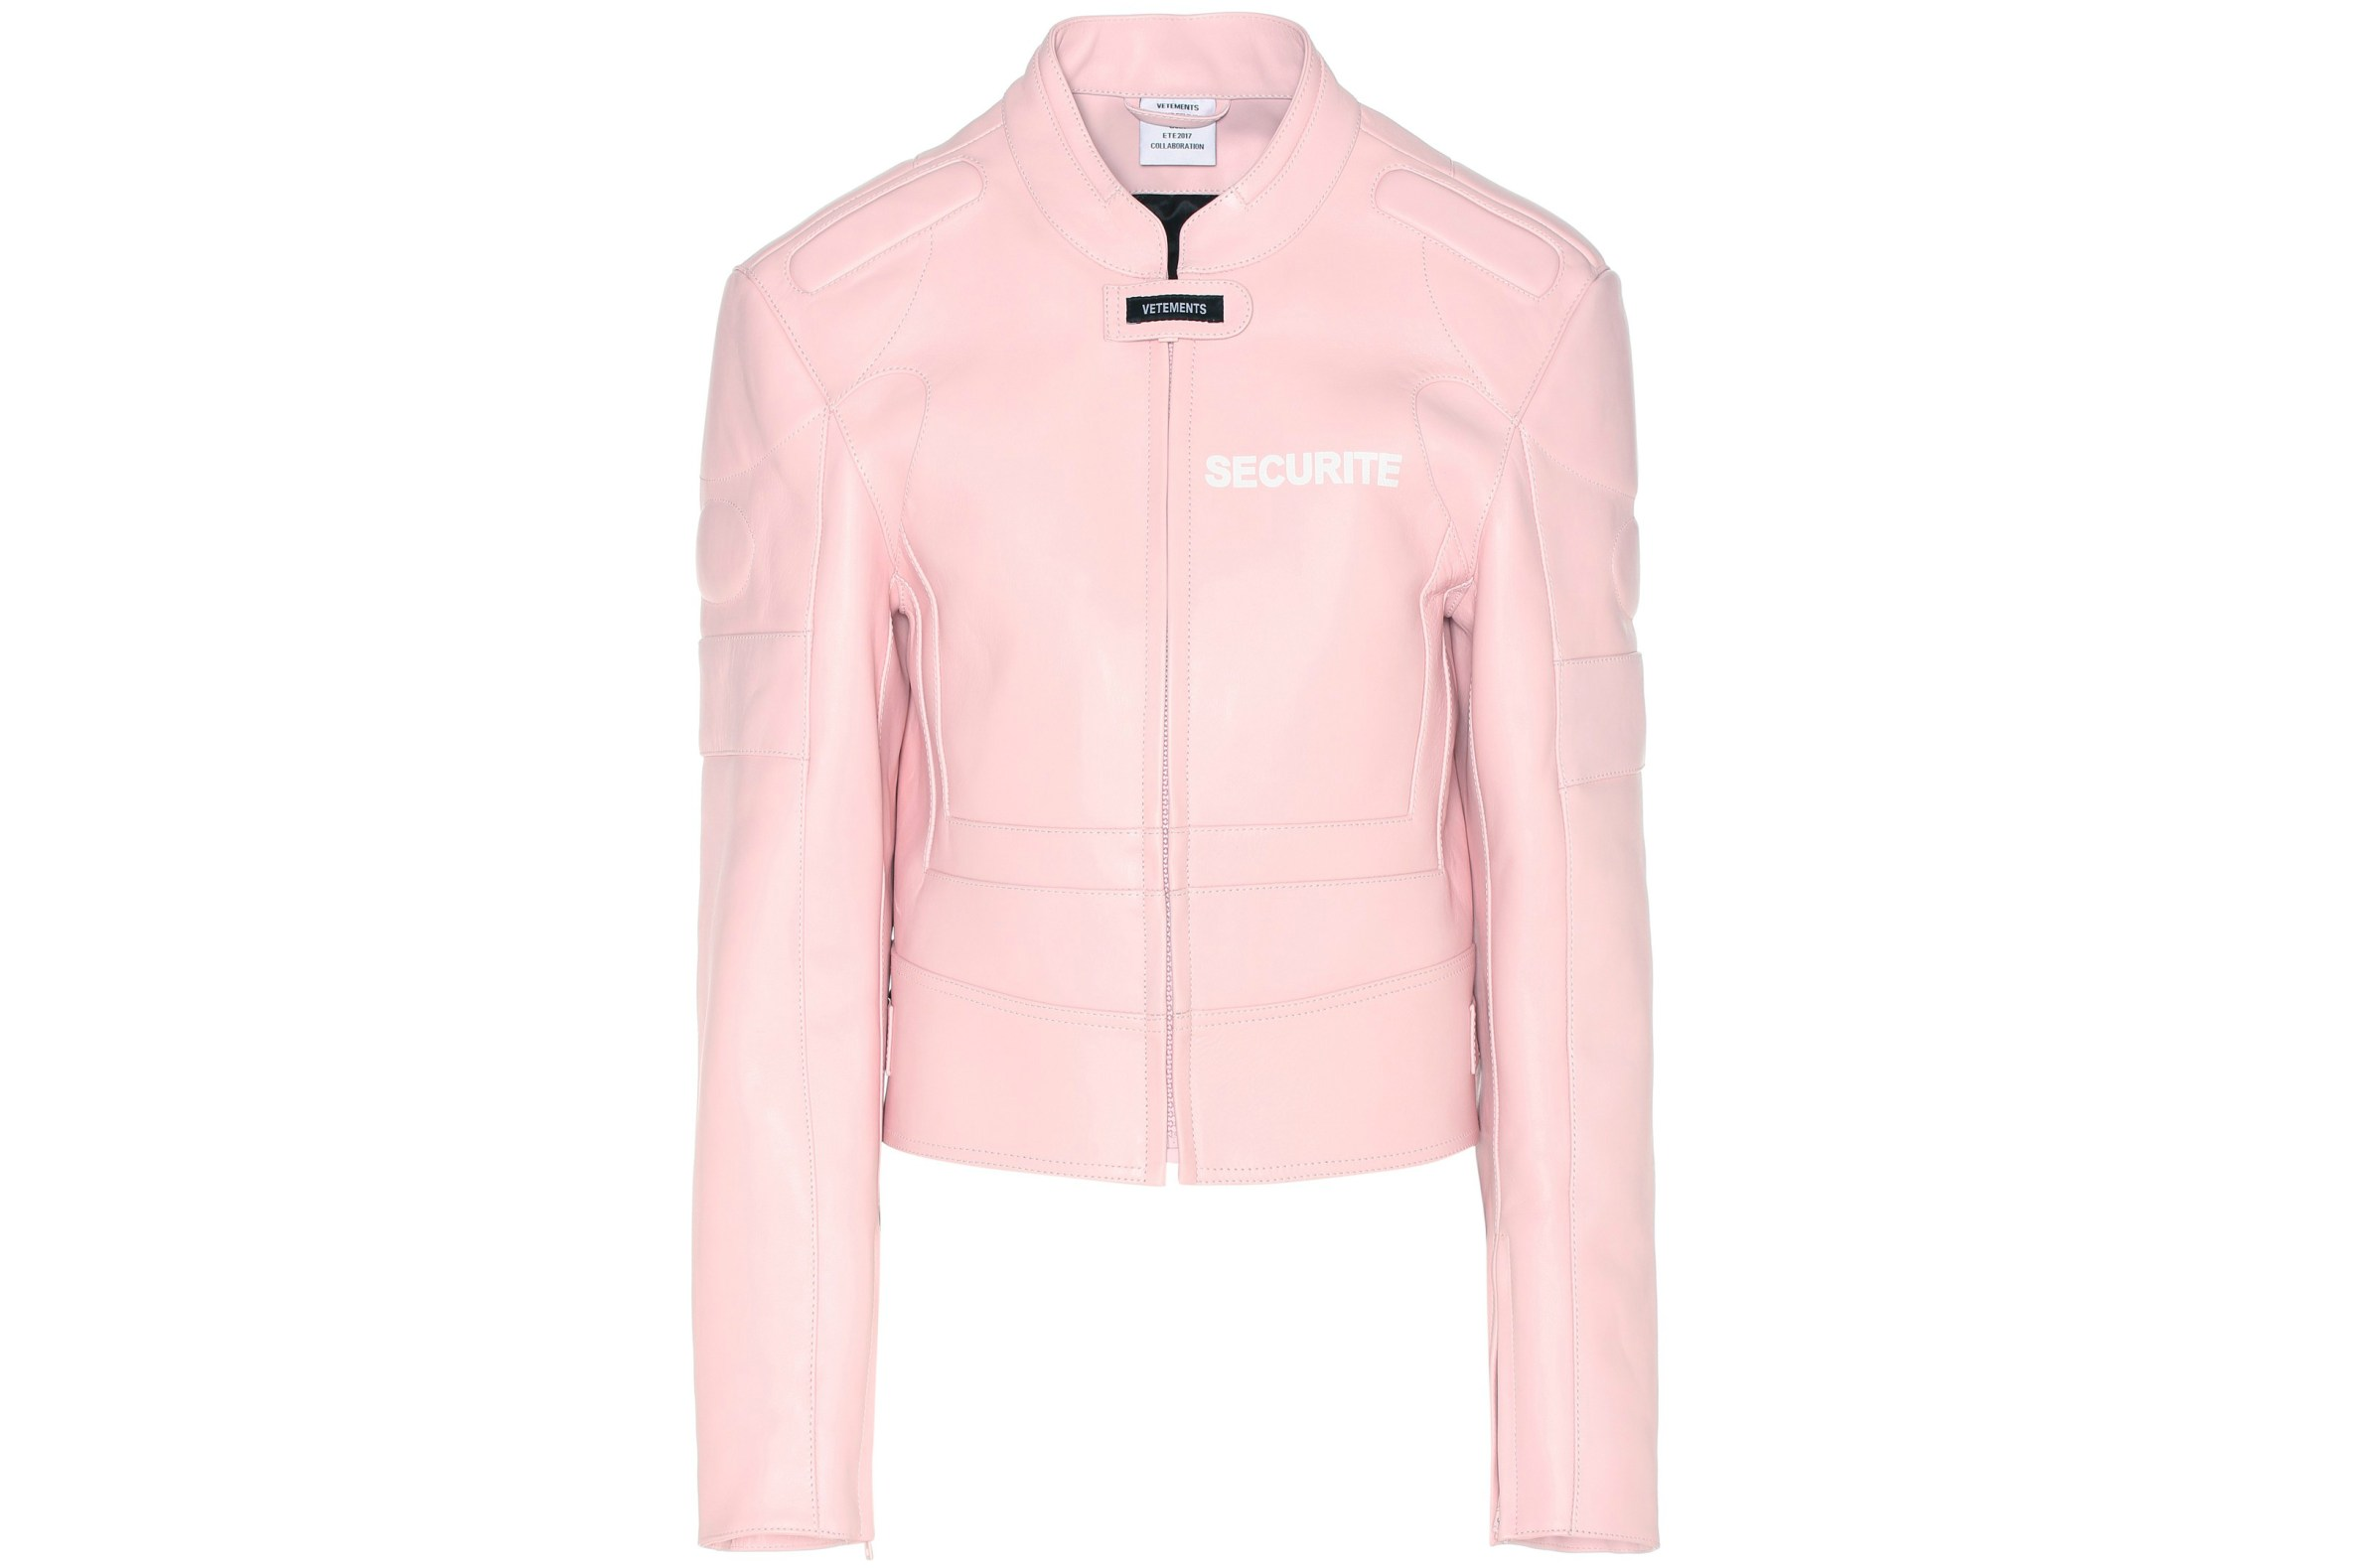 vetements-securite-pink-leather-jacket-2